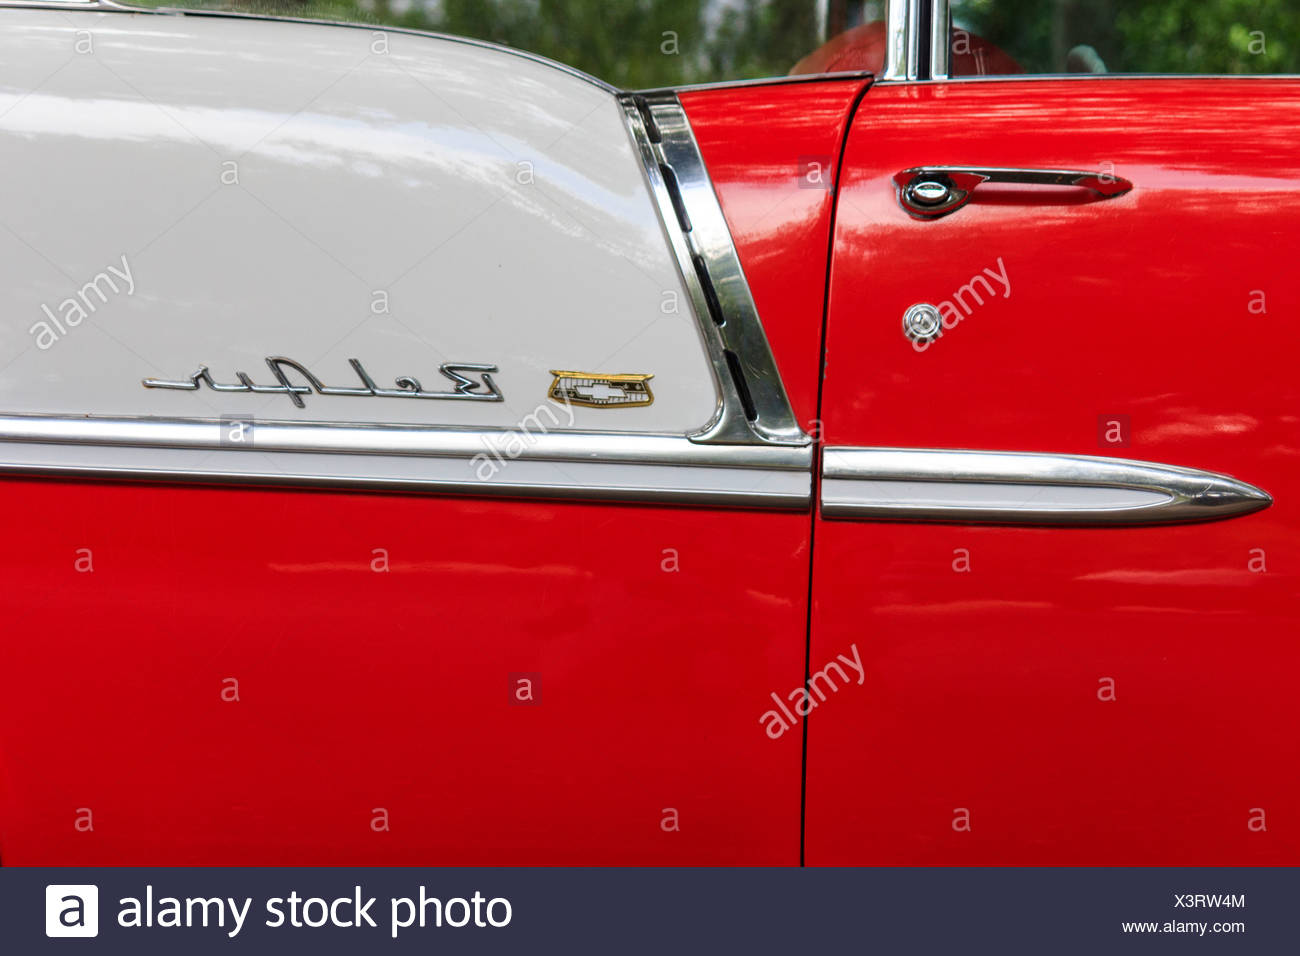 1955, Classic car, Chevrolet, Bel Air, General Motors, New Braunfels, old car, red, white, Texas, USA, United States, America, v - Stock Image